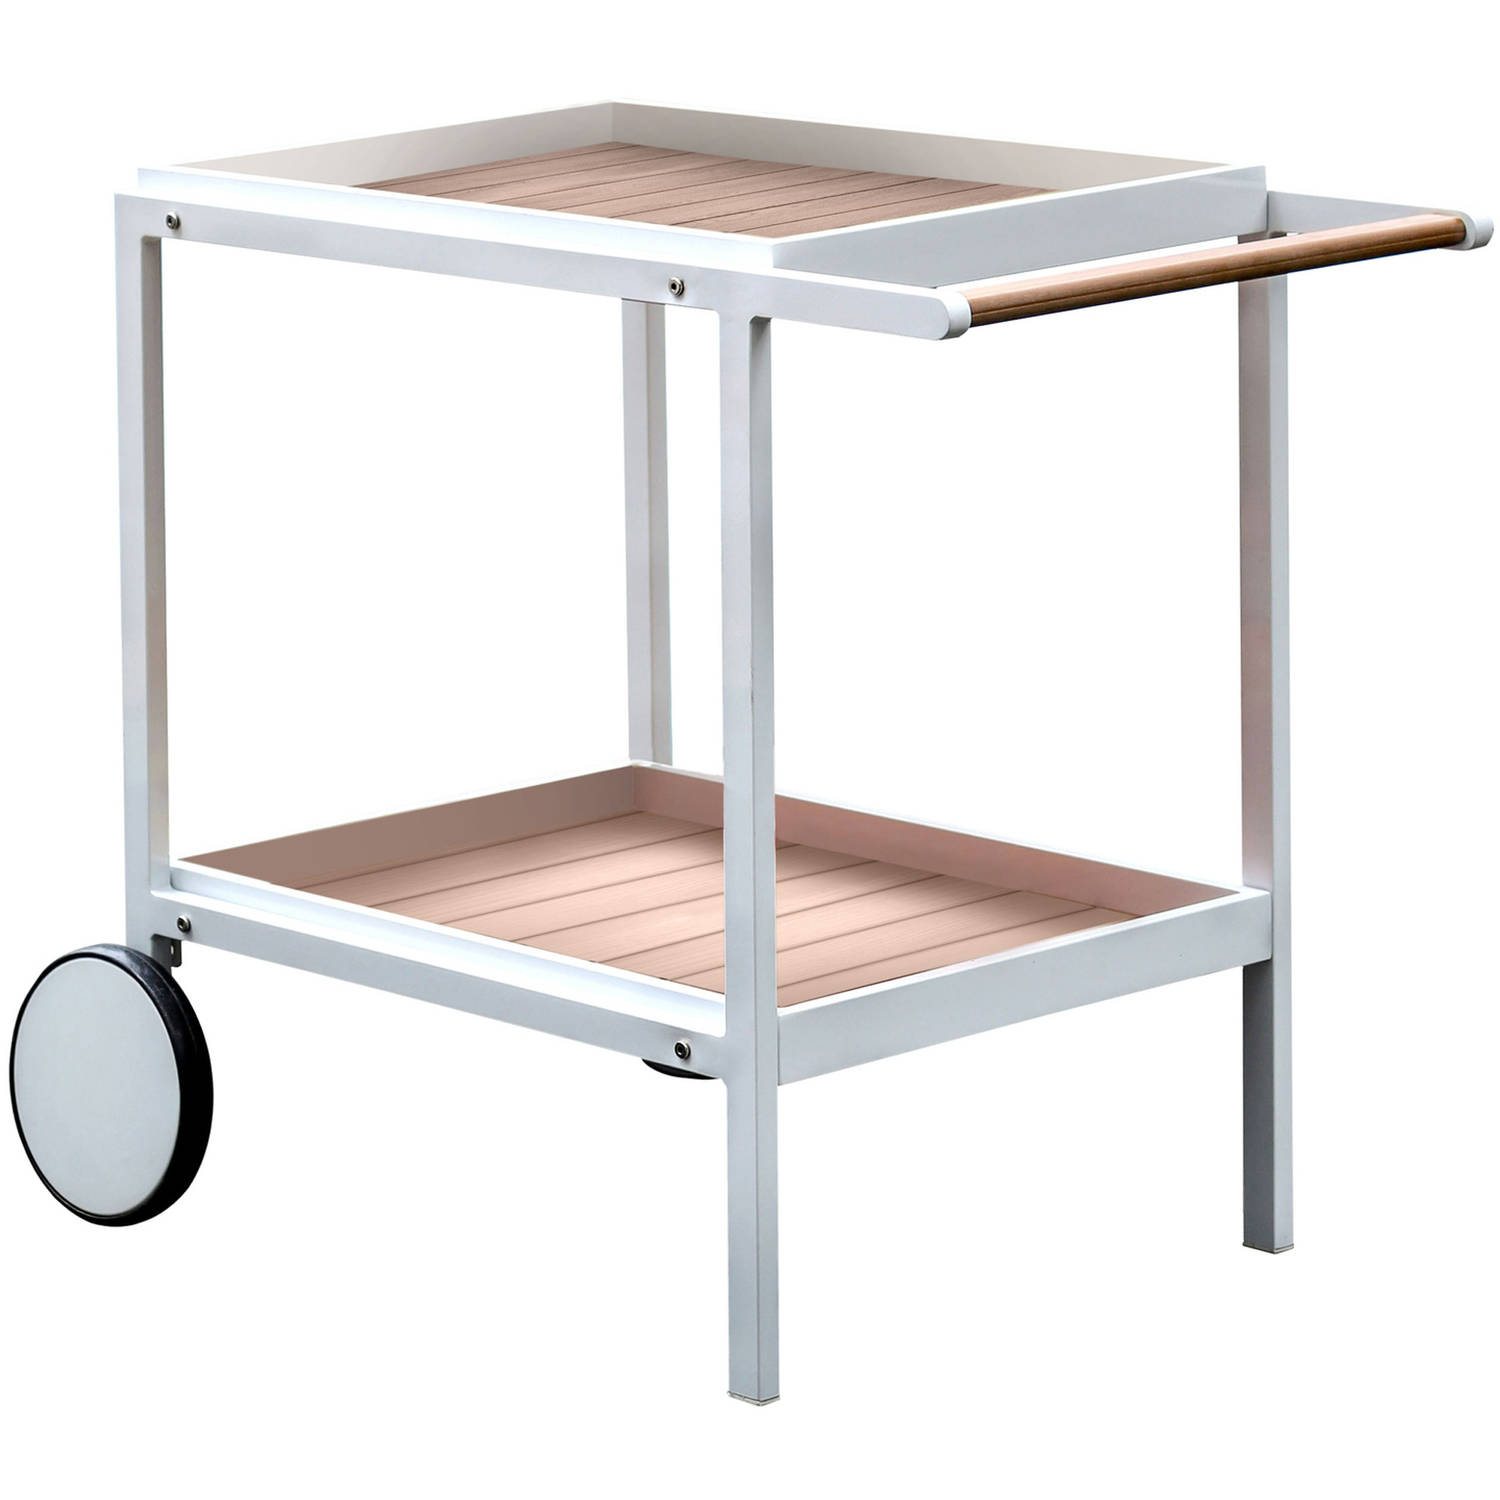 Furniture of America Leland Patio Serving Cart, Oak and White by Furniture of America